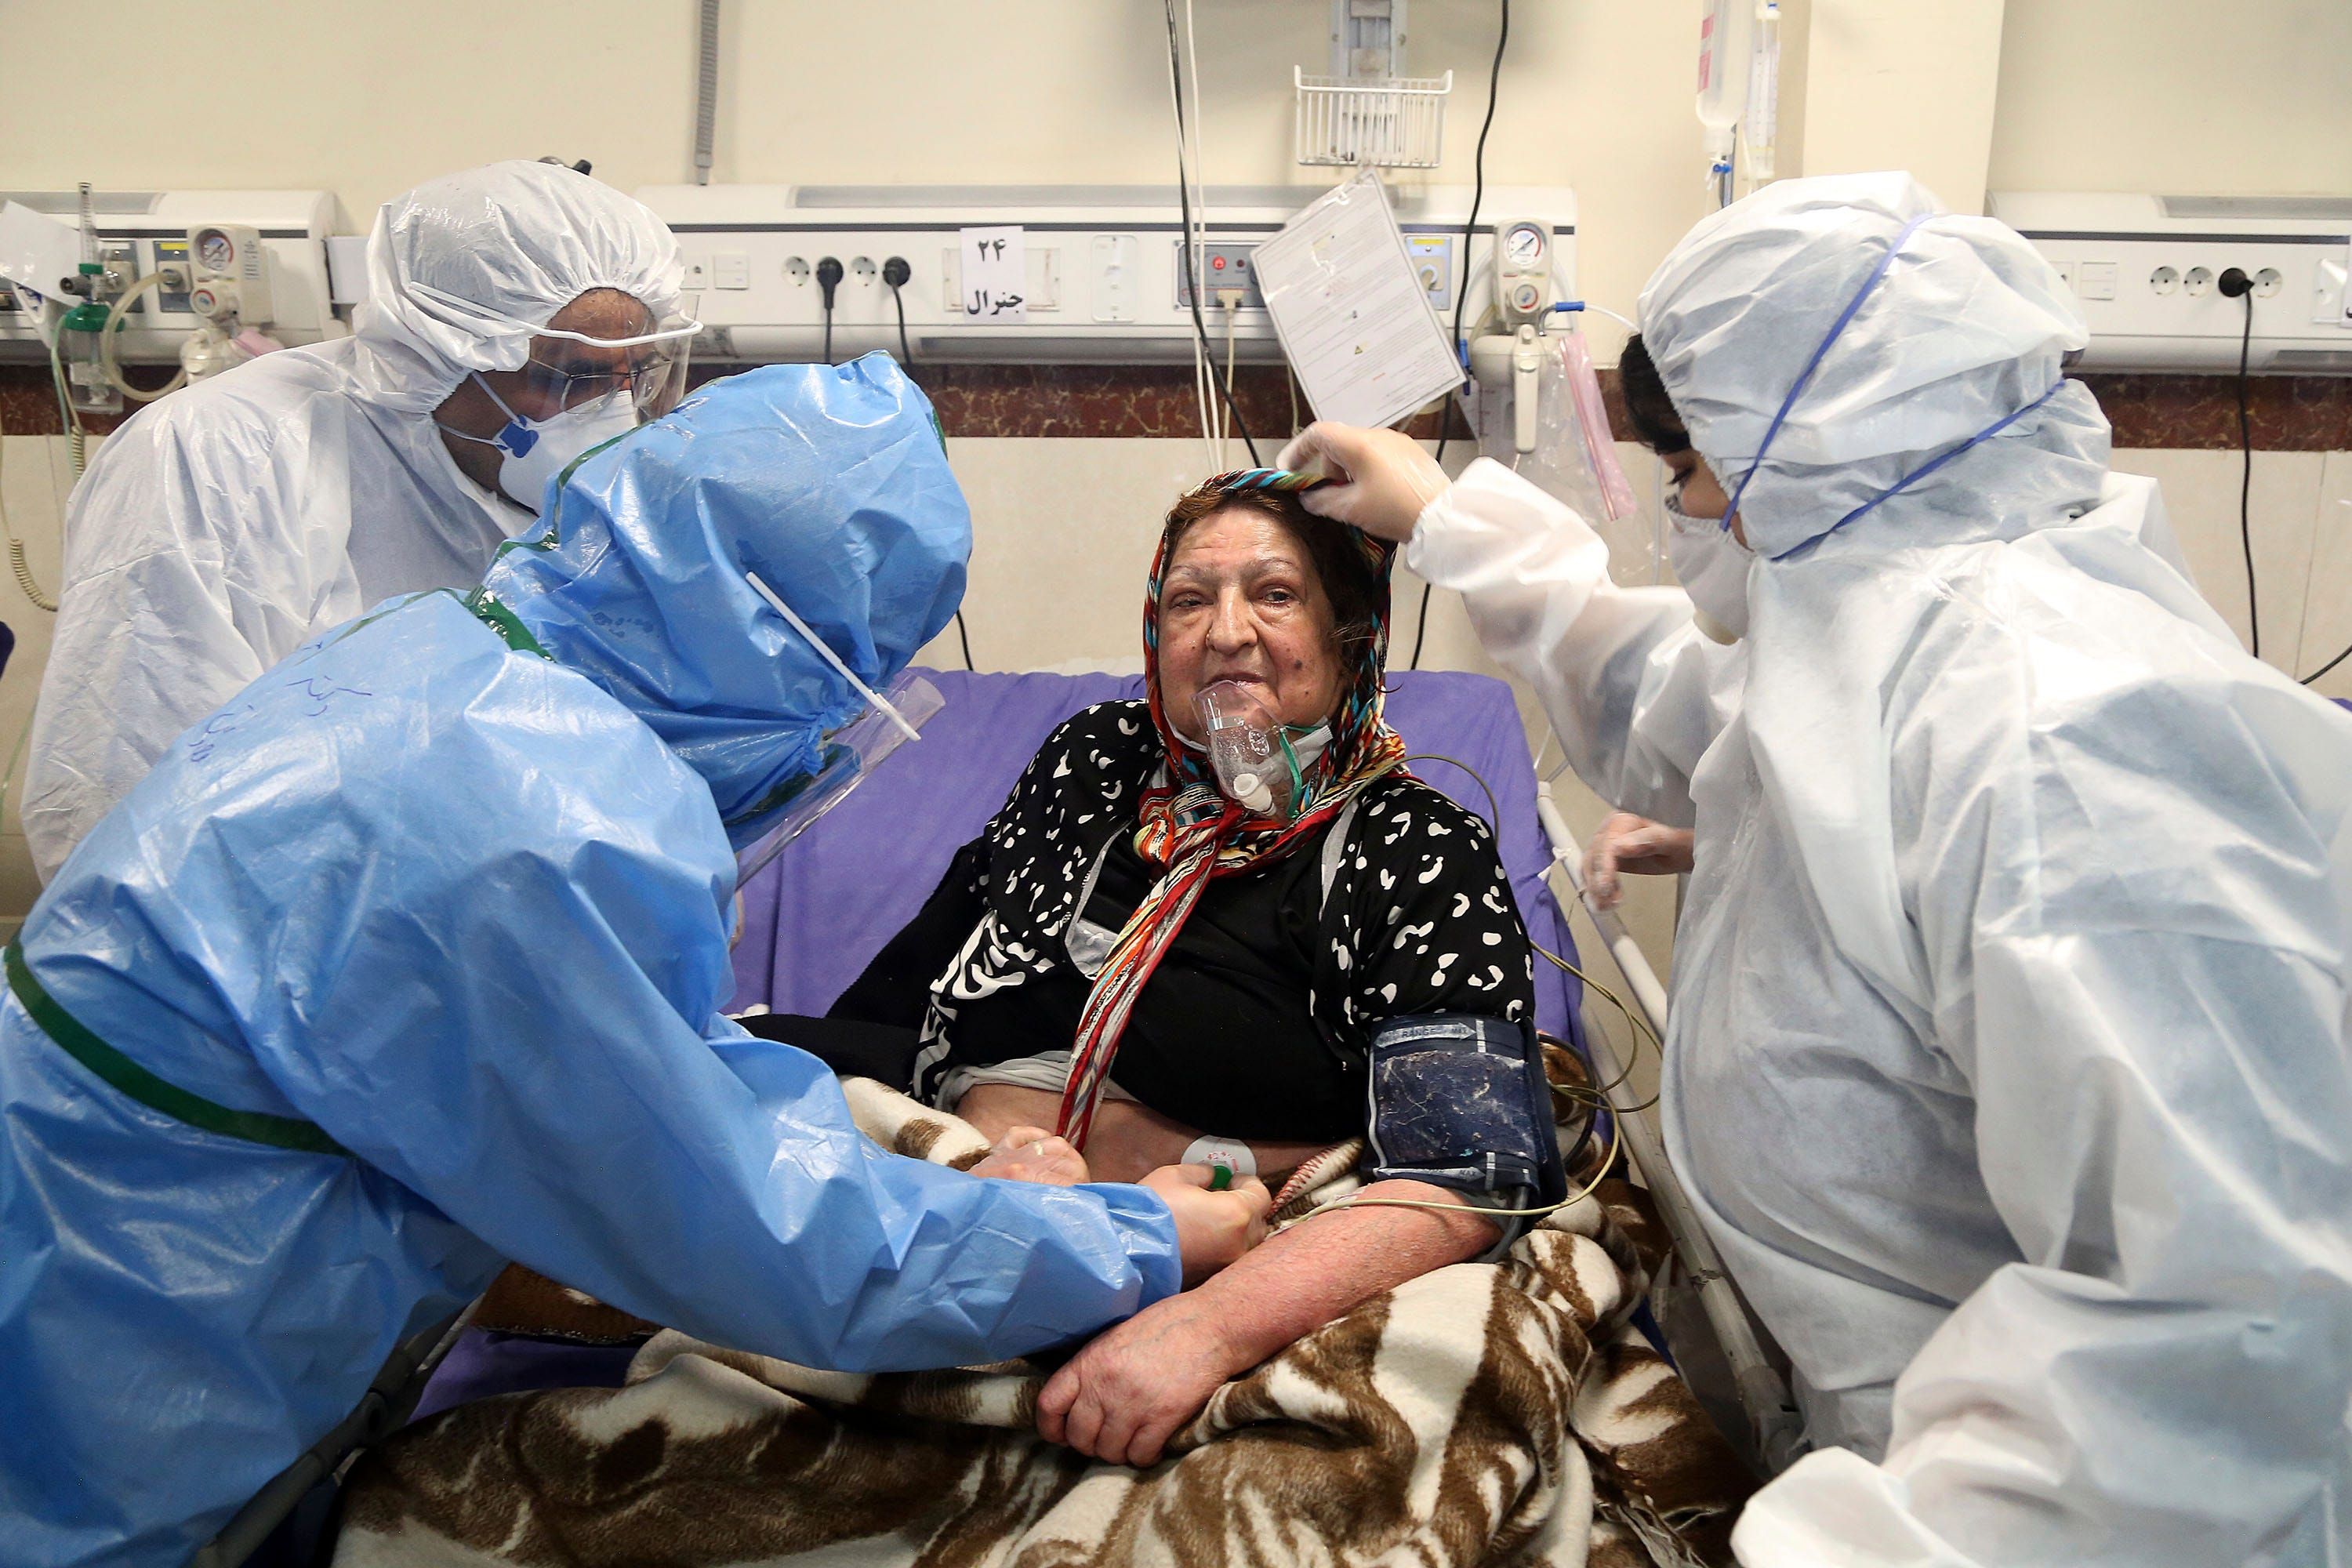 Slide 88 of 113: Medics treat a patient infected with the new coronavirus, at a hospital in Tehran, Iran, Sunday, March 8, 2020. With the approaching Persian New Year, known as Nowruz, officials kept up pressure on people not to travel and to stay home. Health Ministry spokesman Kianoush Jahanpour, who gave Iran's new casualty figures Sunday, reiterated that people should not even attend funerals.